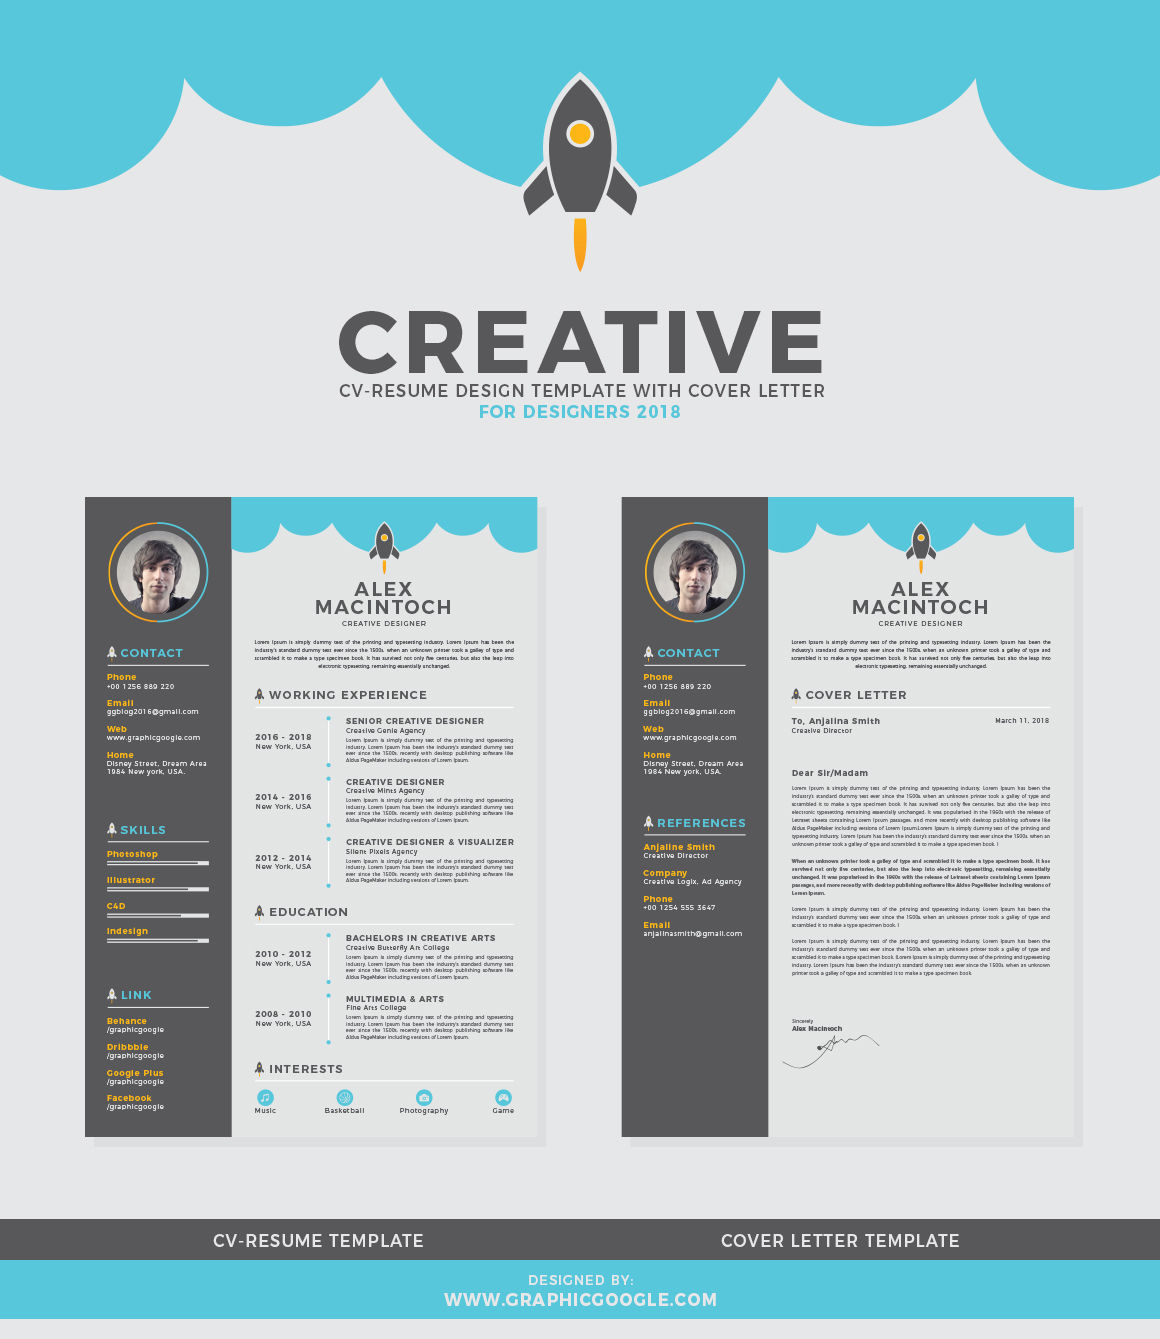 Free Creative CV Resume Design Template With Cover